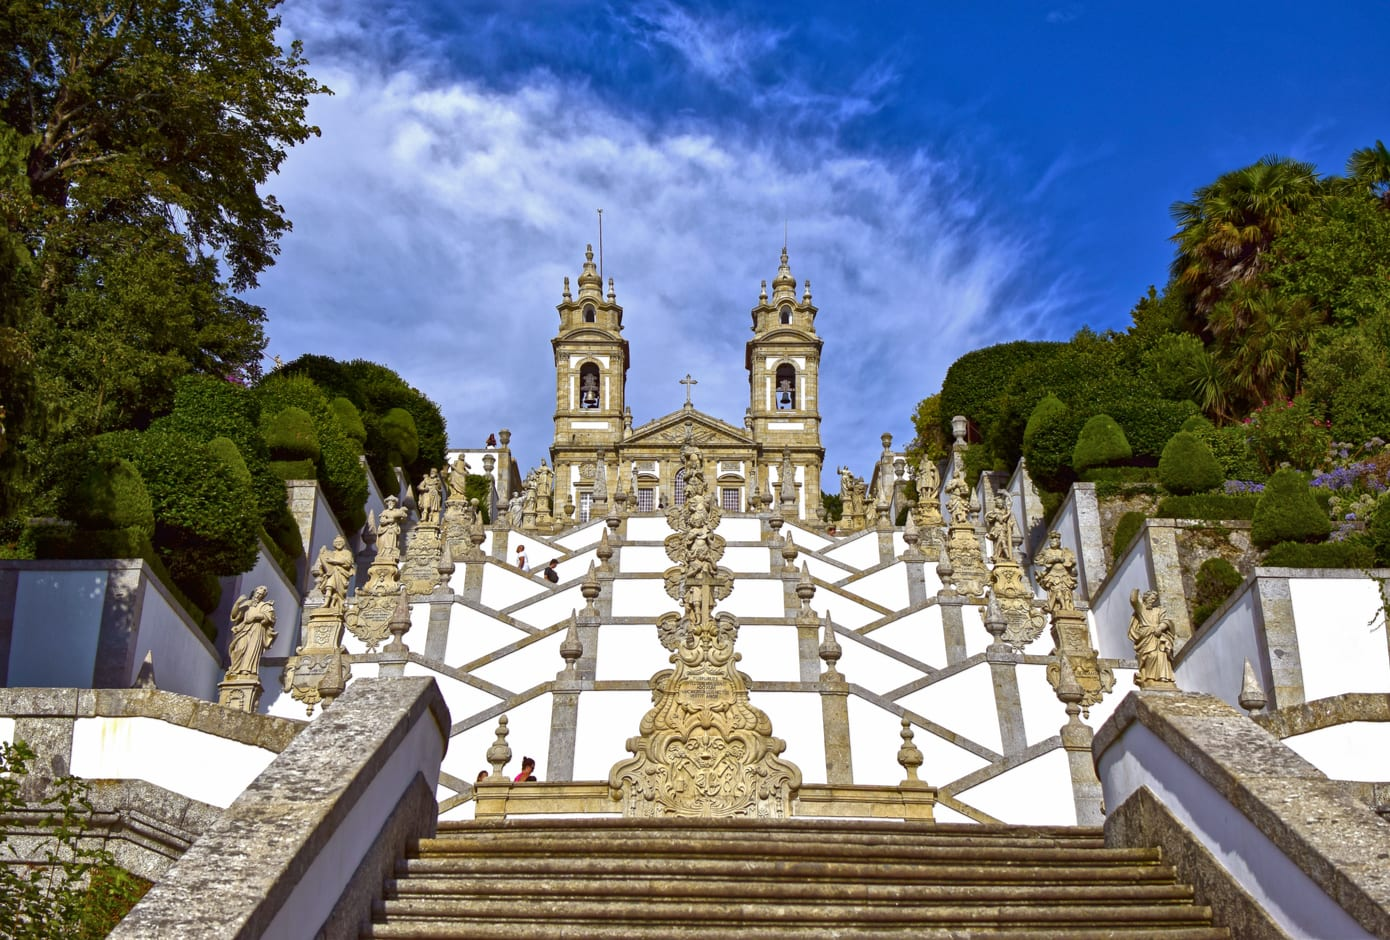 Bom Jesus do Monte Sanctuary located in Braga, Portugal